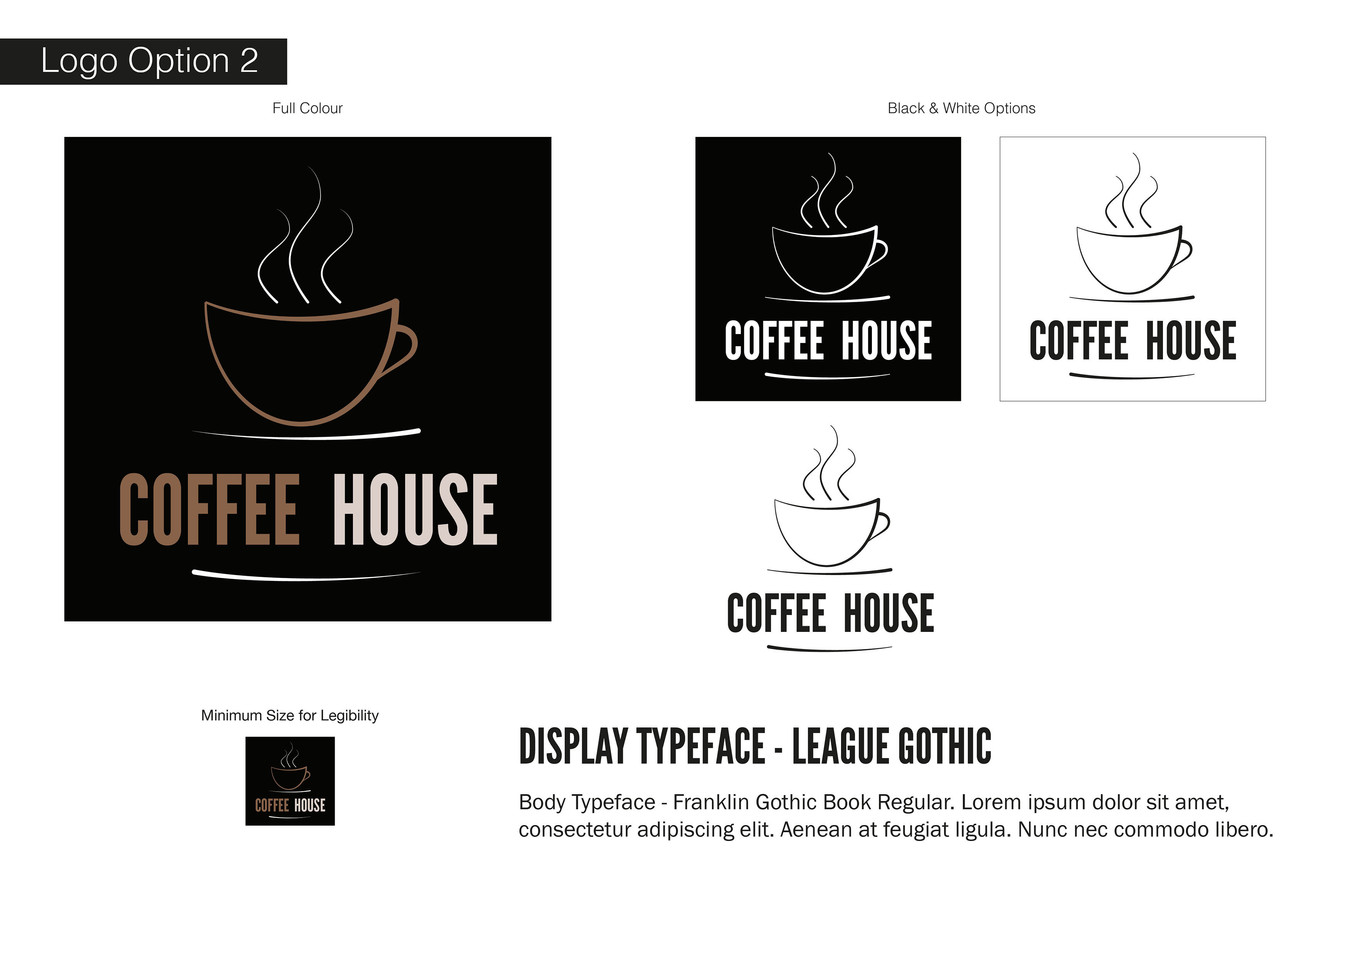 Coffee House Visual Identity - Development 2